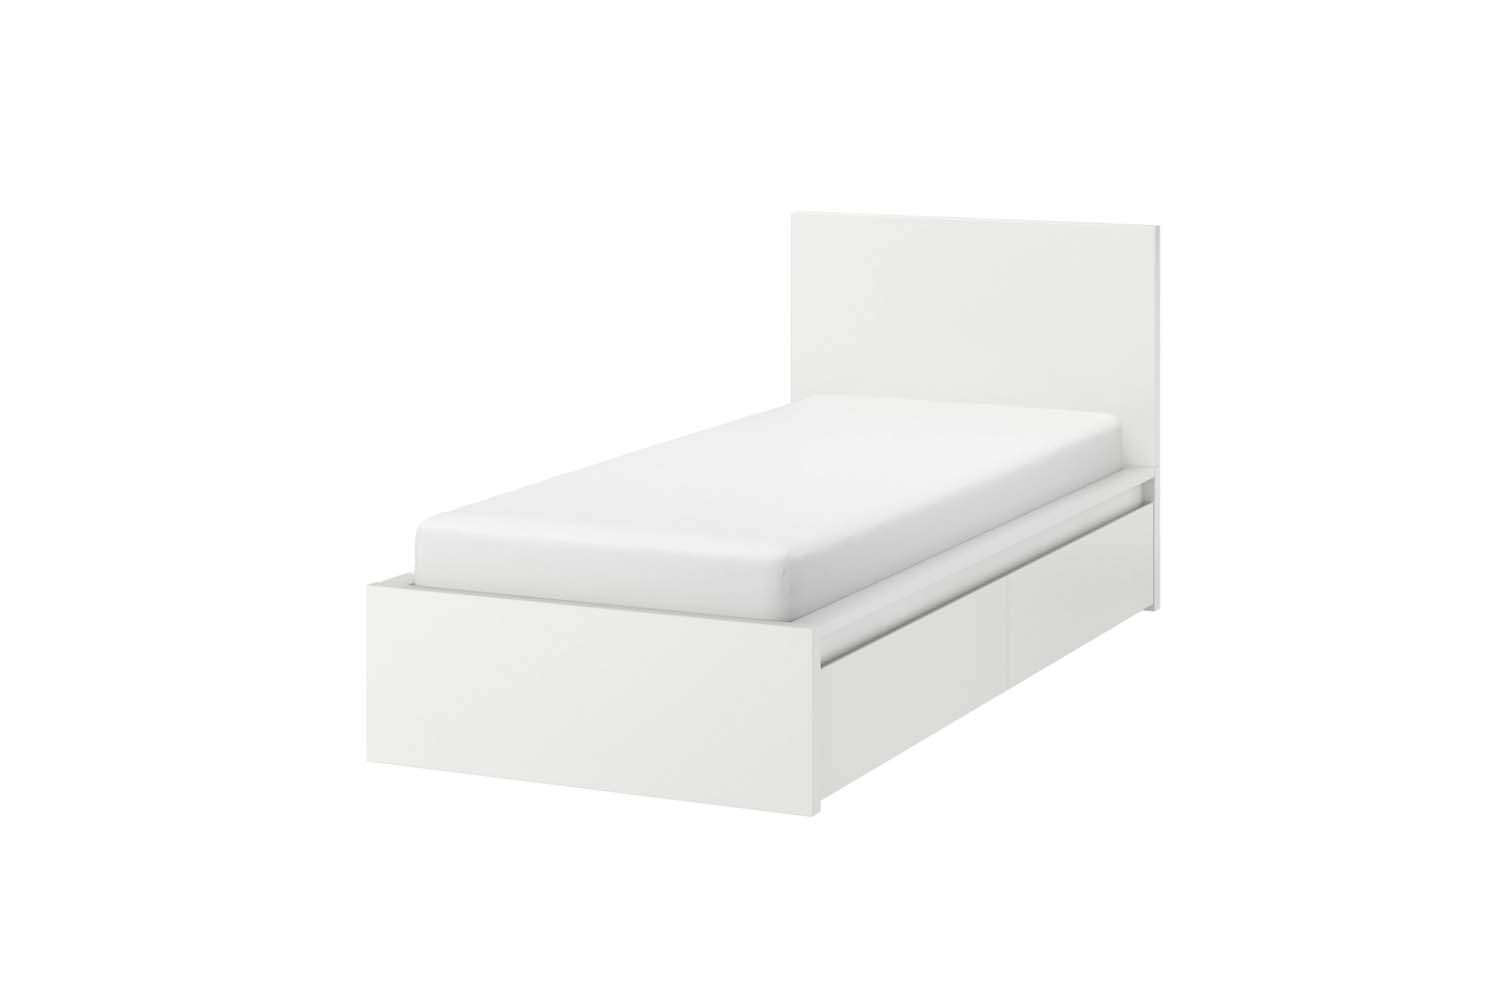 A classic budget option is the Malm High Bed Frame which includes two storage boxes below; $4 at Ikea.